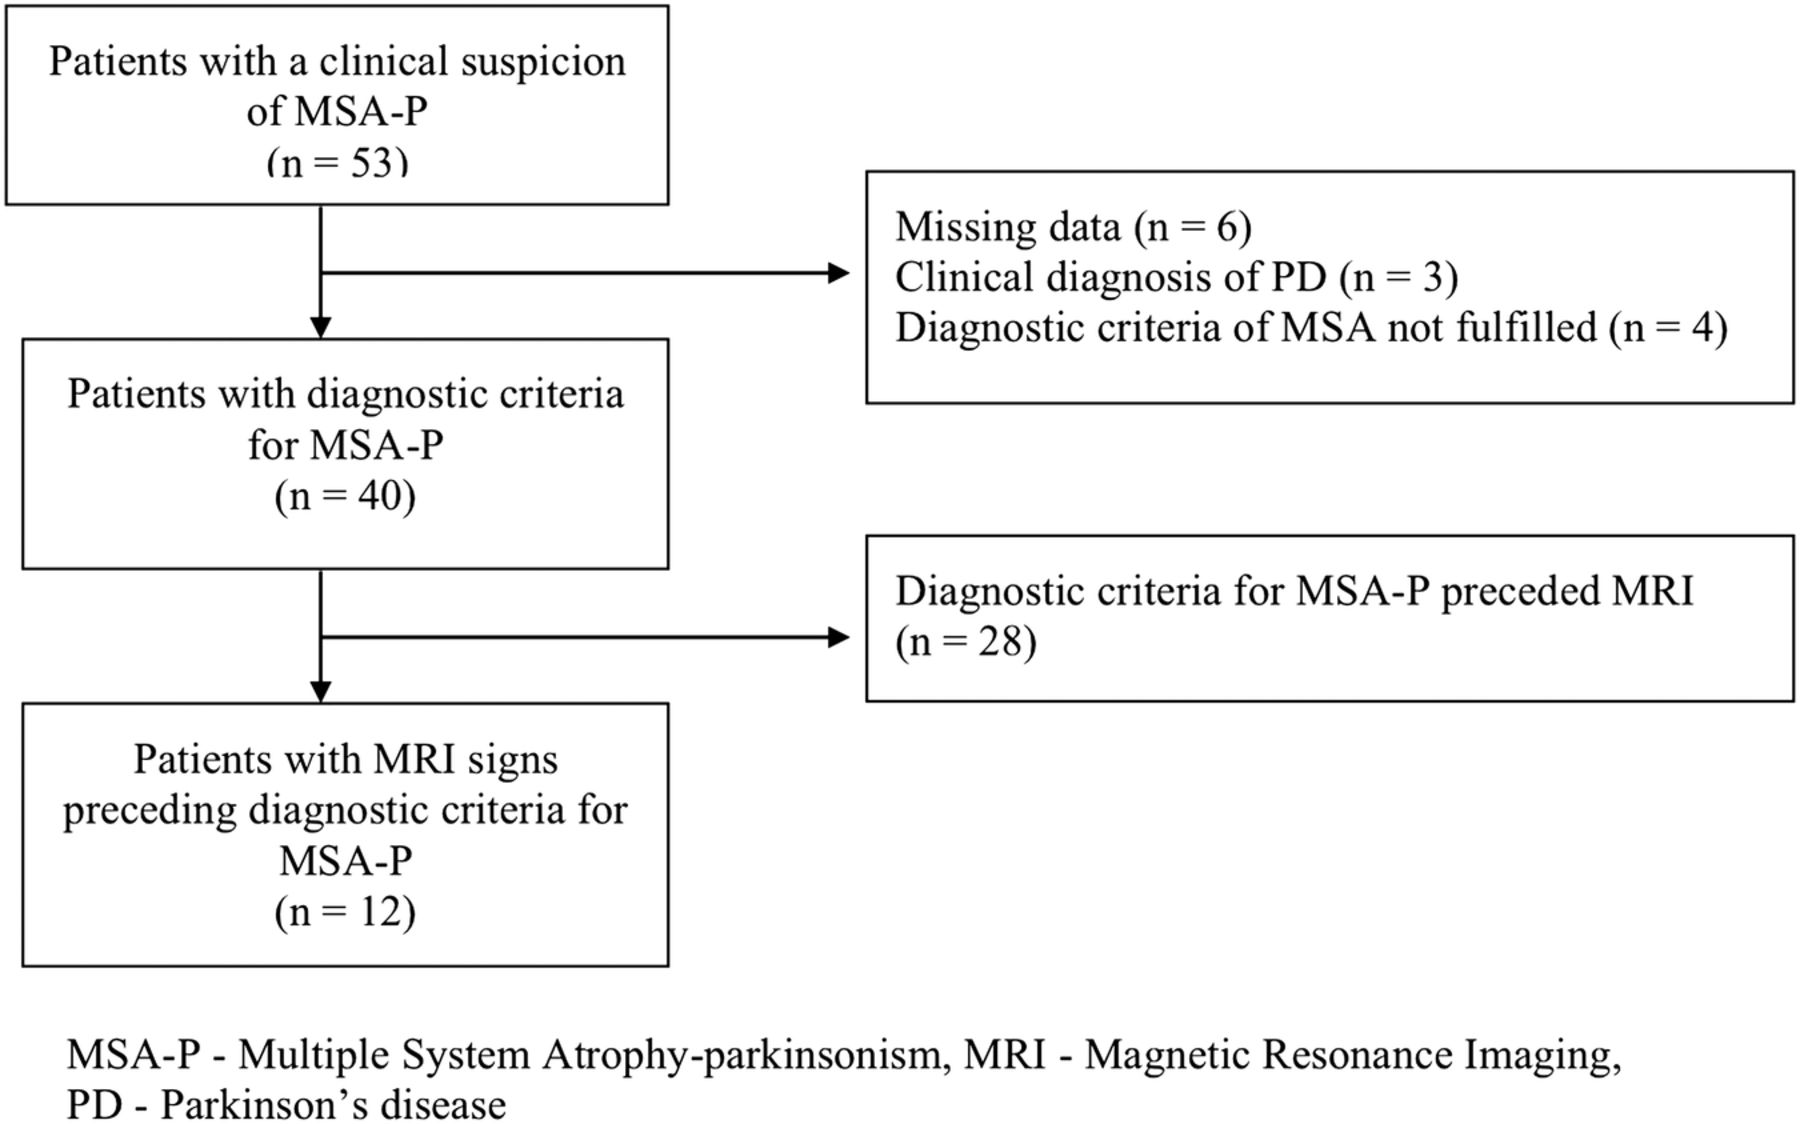 Mri Signs Of Multiple System Atrophy Preceding The